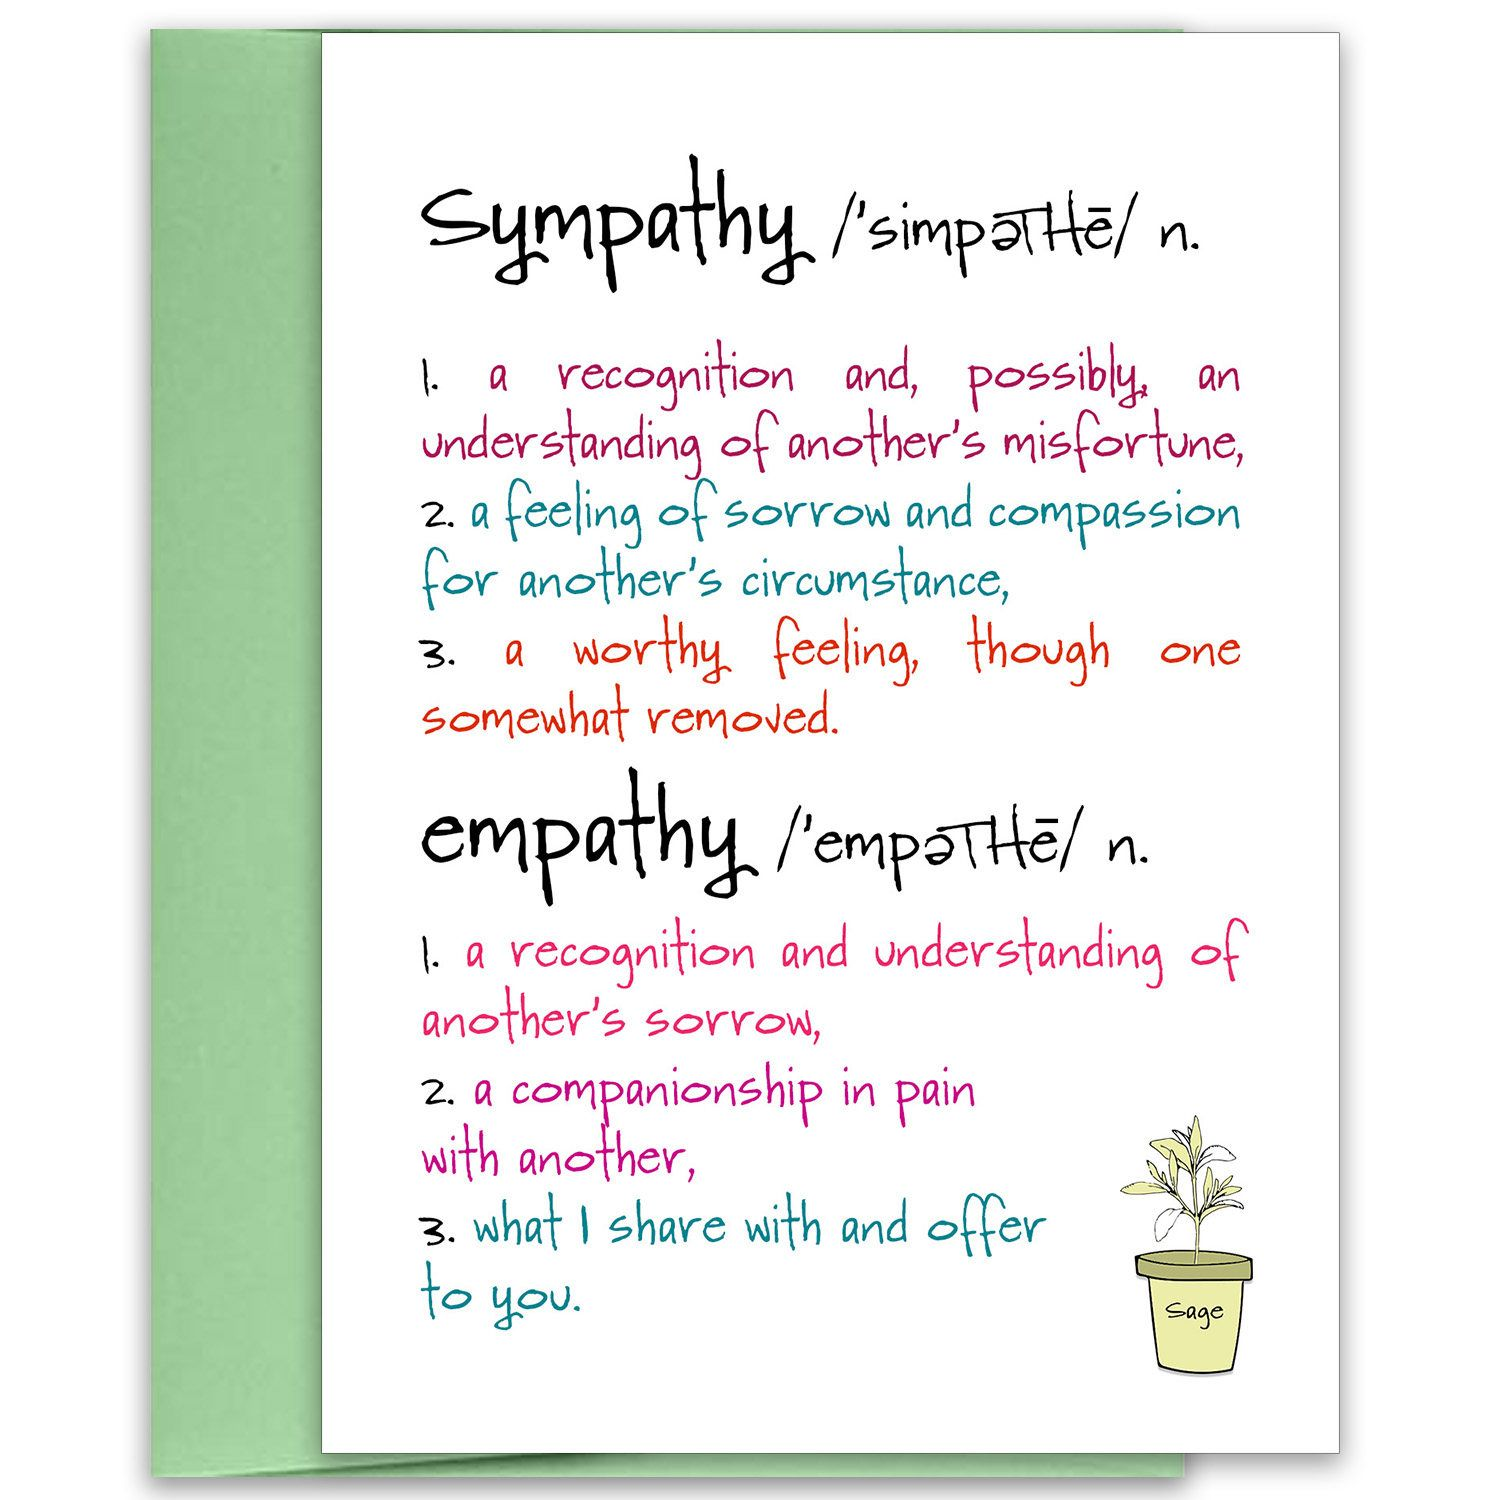 Sympathy empathy card sympathy card empathy card support explore sympathy greetings sympathy cards and more kristyandbryce Images